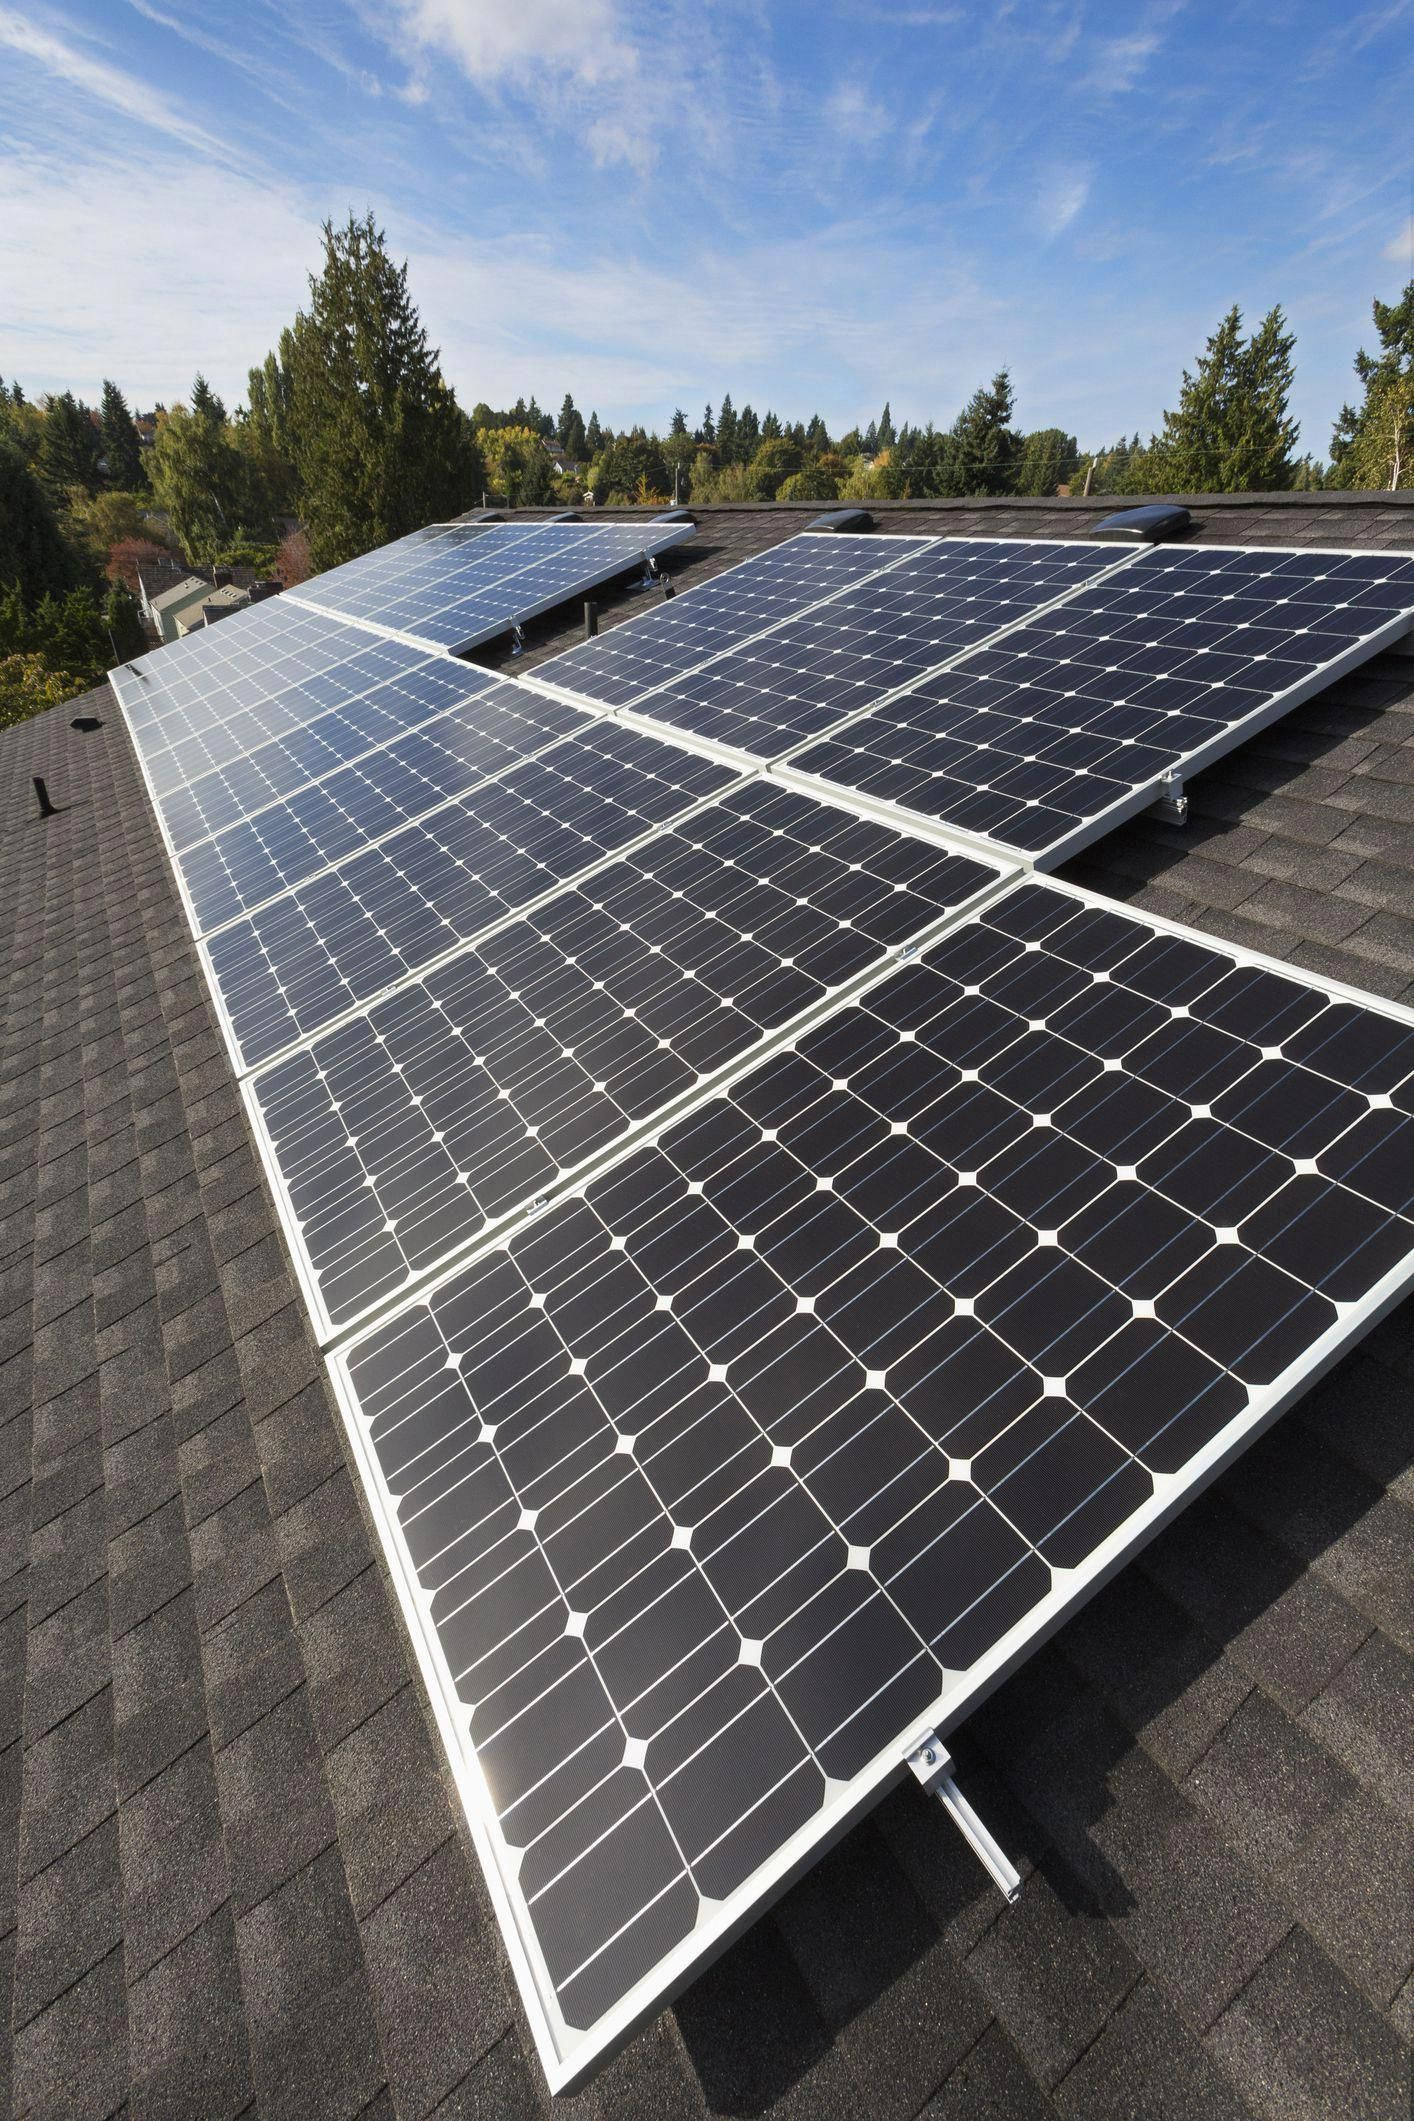 Instal solar panels #solarenergy,solarpanels,solarpower,solarpanelsforhome,solarpanelkits,solarpoweredgenerator,solarshingles,solarpowersystem,solarpanelinstallation,photovoltaiccell,bestsolarpanels,solarinstallation #solarpanels,solarenergy,solarpower,solargenerator,solarpanelkits,solarwaterheater,solarshingles,solarcell,solarpowersystem,solarpanelinstallation,solarsolutions